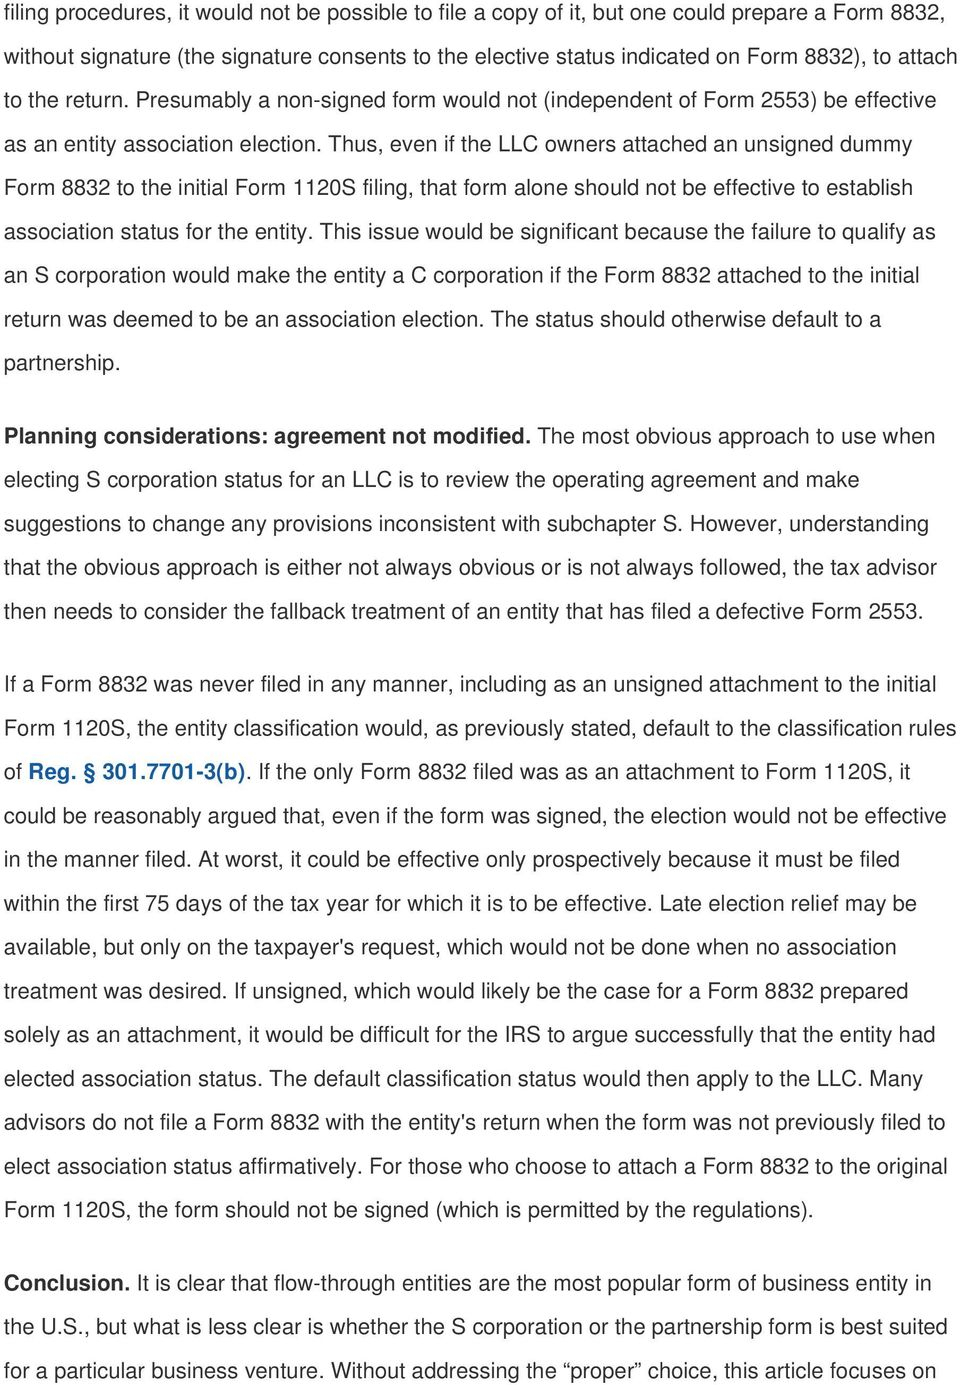 S Corp Operating Agreement Template Avoiding Traps When Electing S Corporation Status For An Llc Pdf